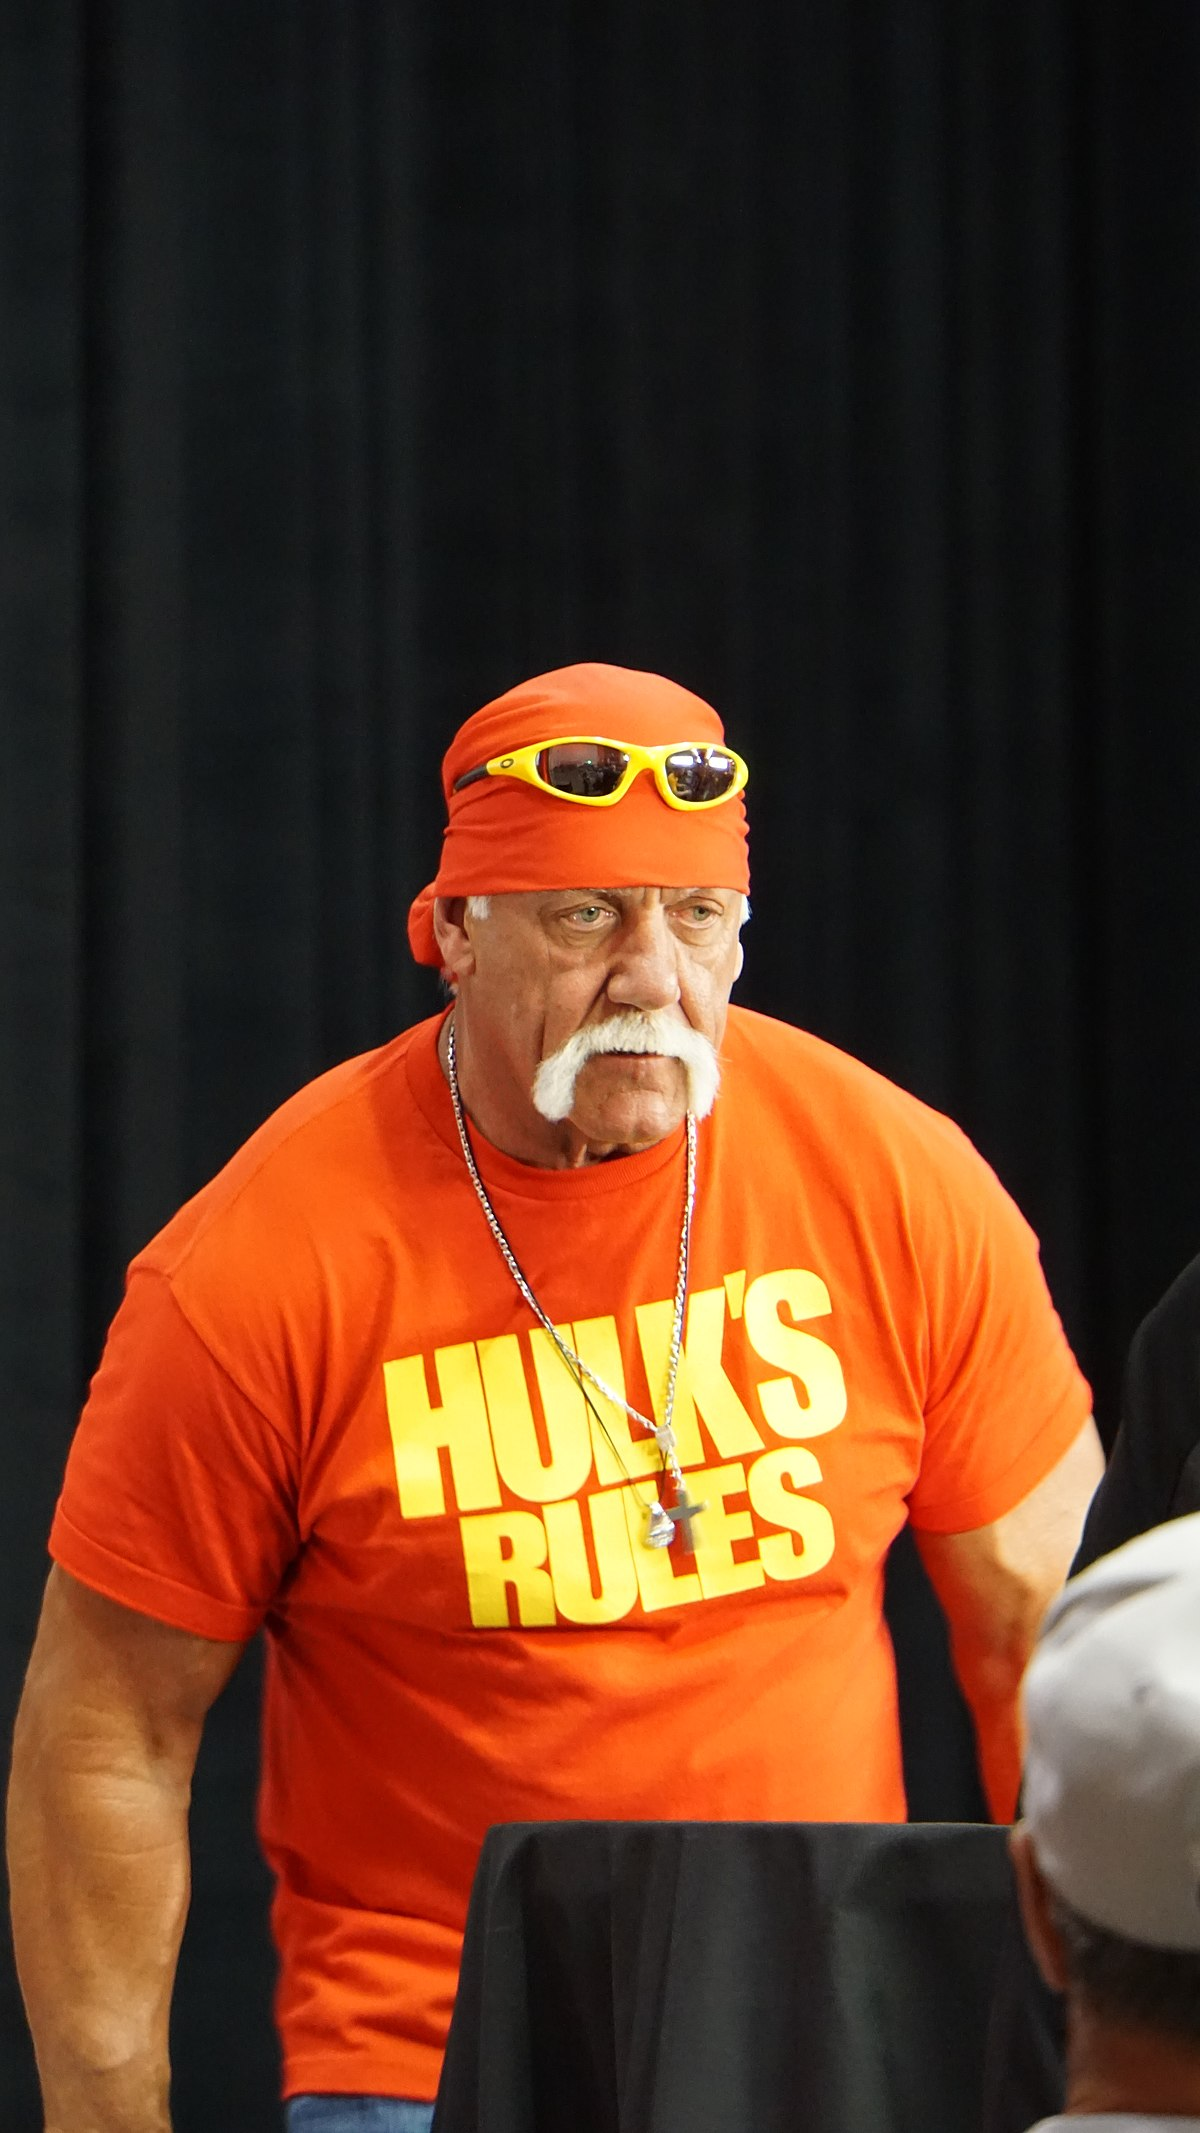 Hulk hogan and wwe-1479